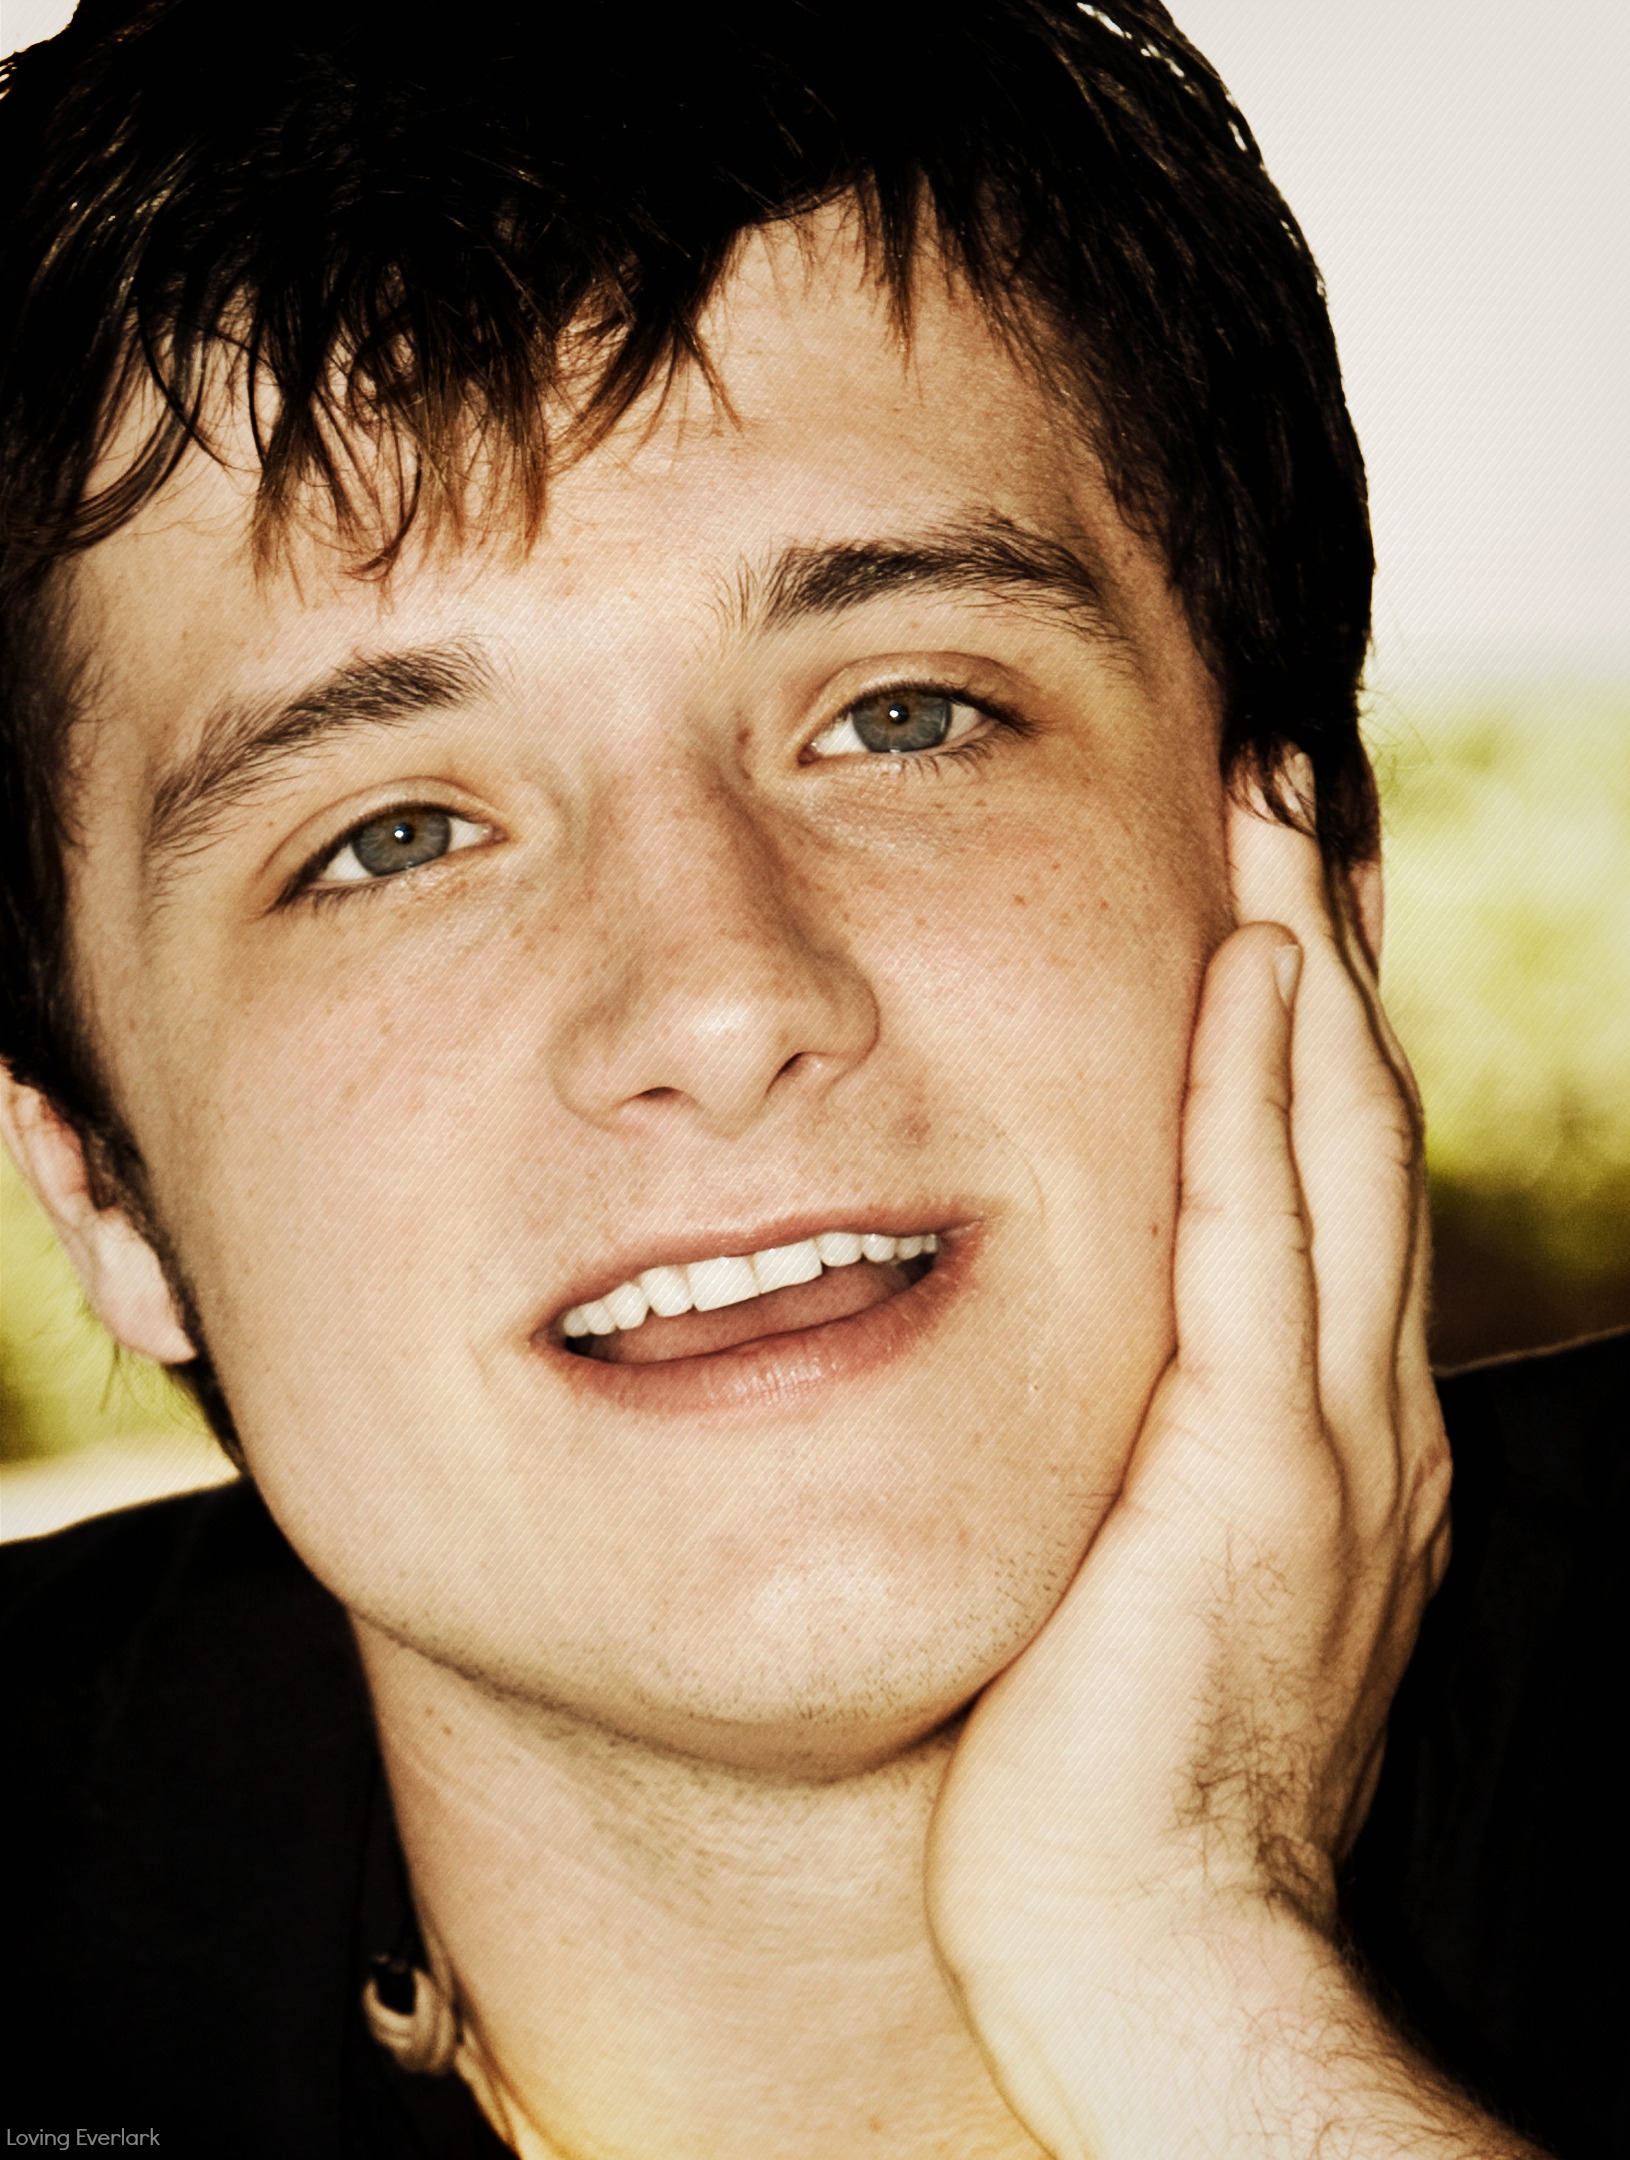 Josh Hutcherson 2015 List Of Movies - new movies this week ...